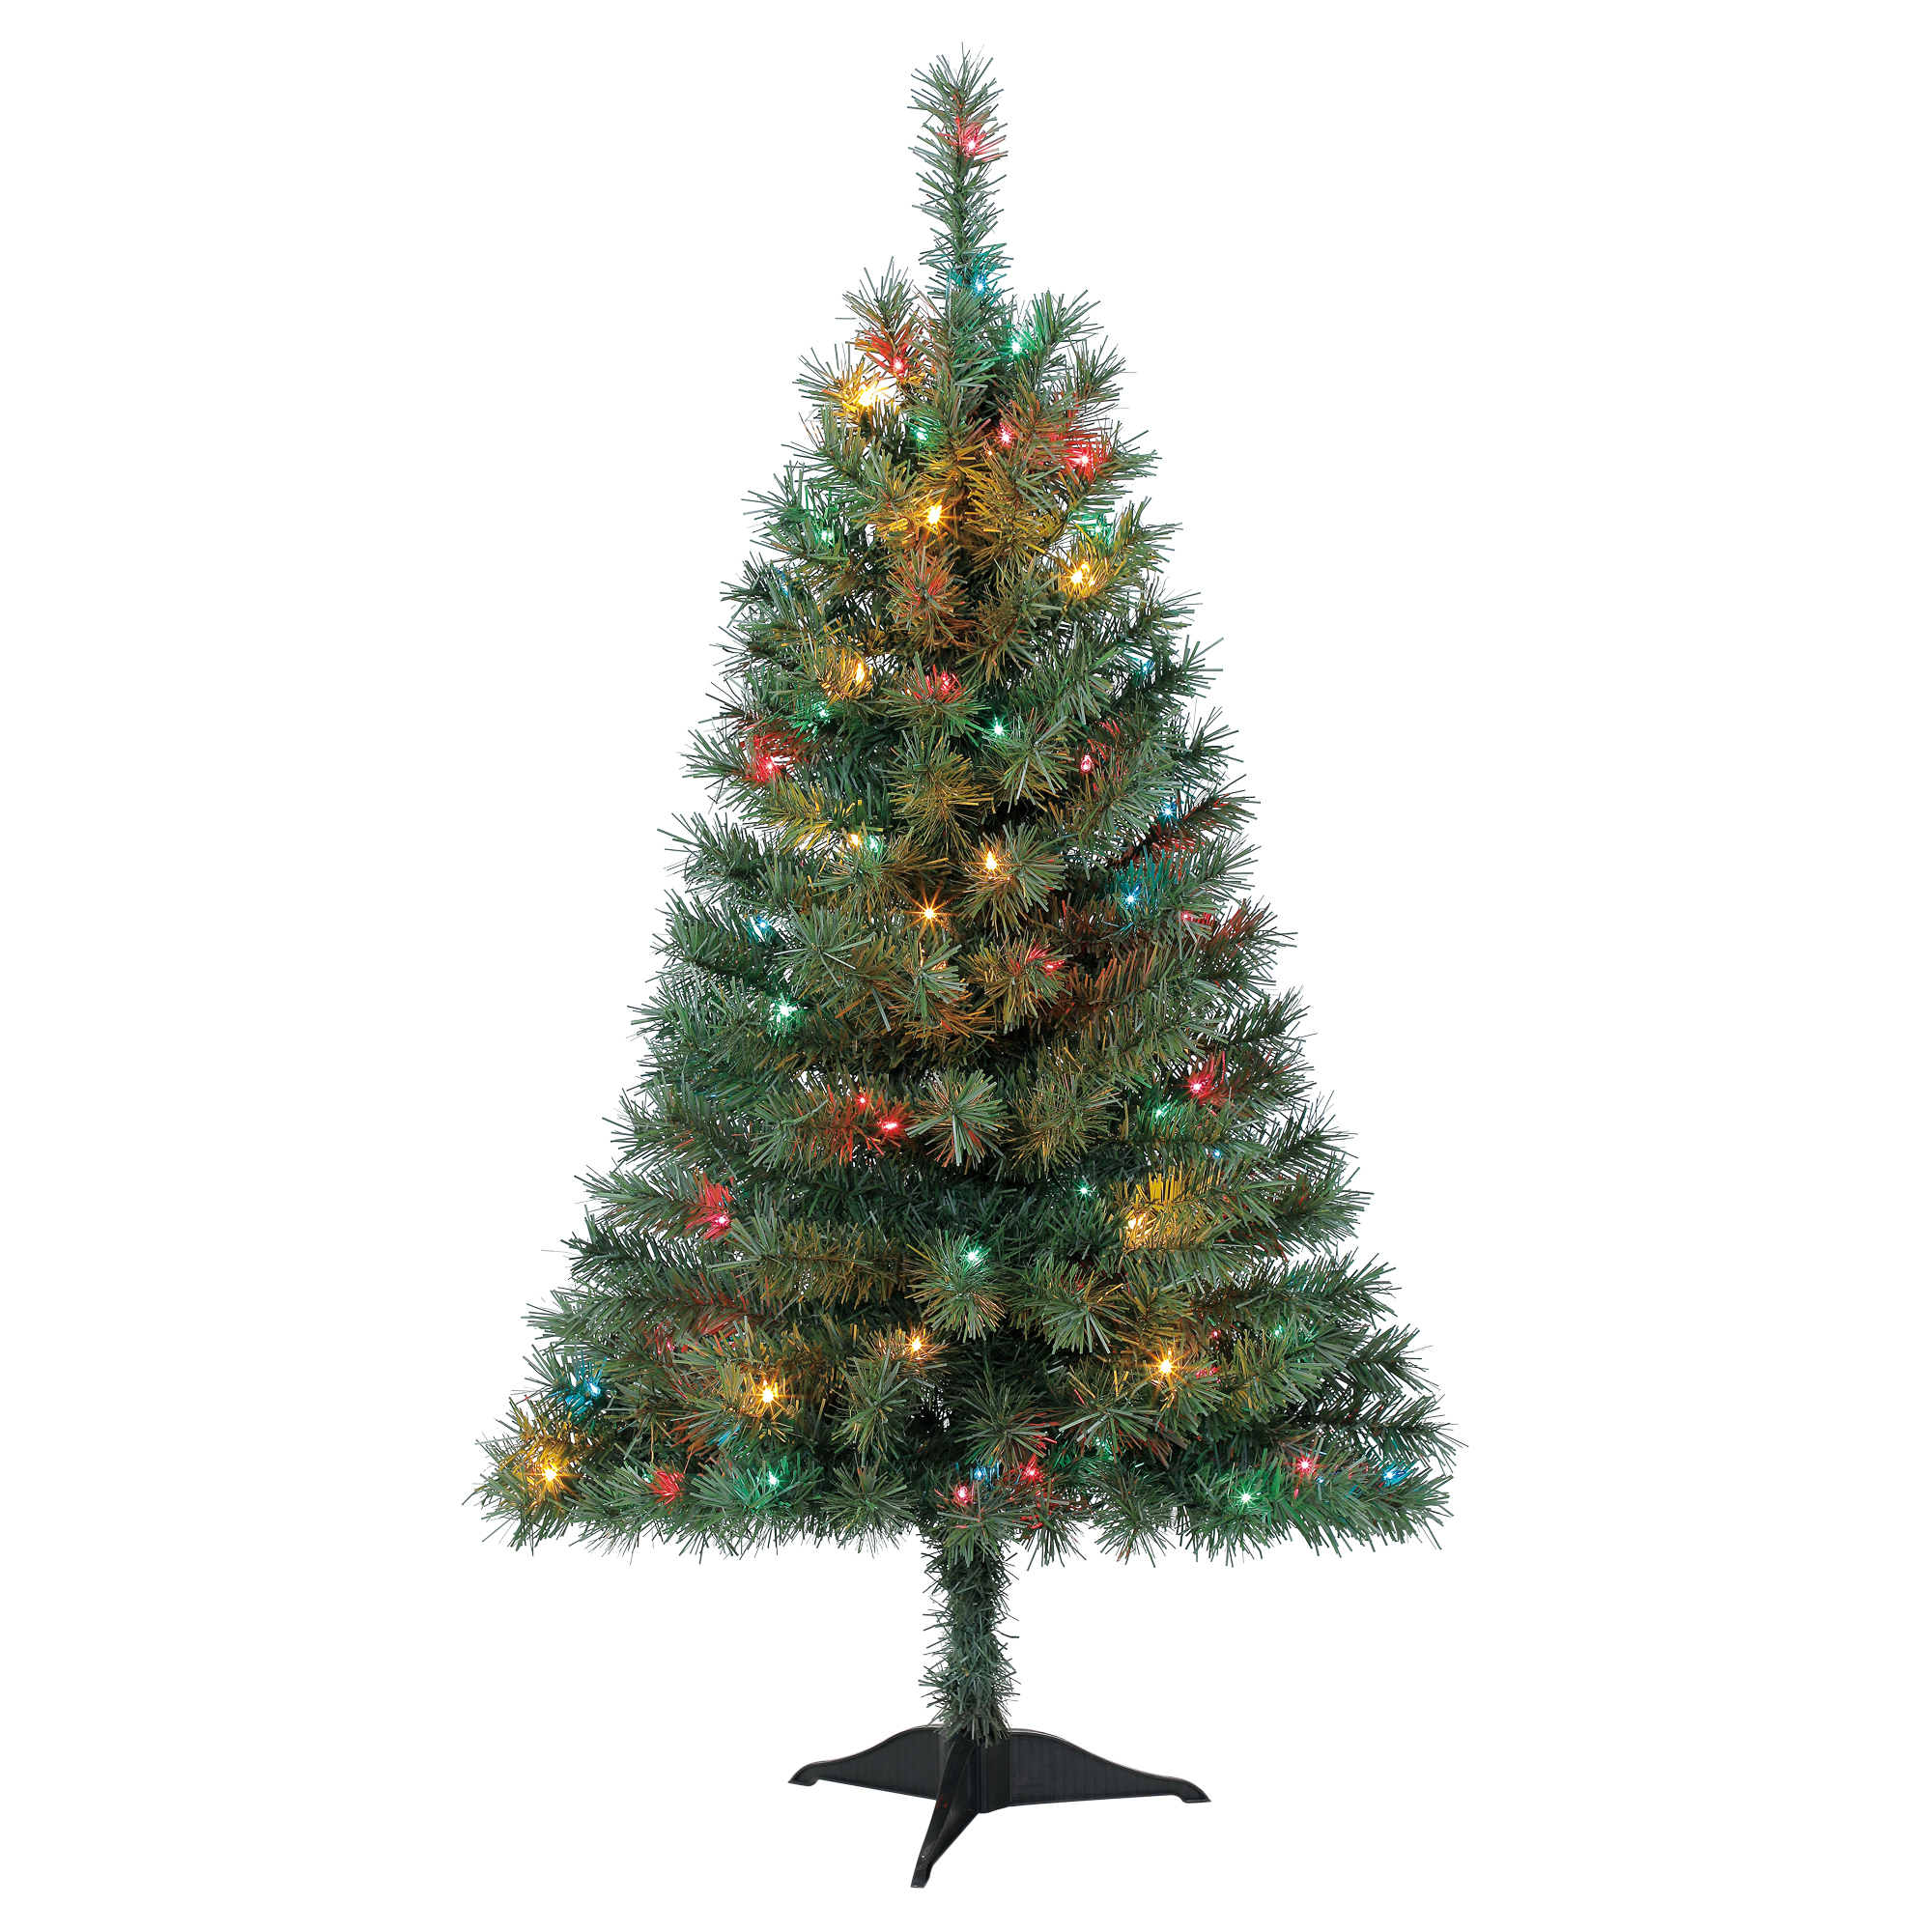 Holiday Time 4ft Pre-Lit Indiana Spruce Green Artificial Christmas Tree with 105 Multicolored Lights - Green